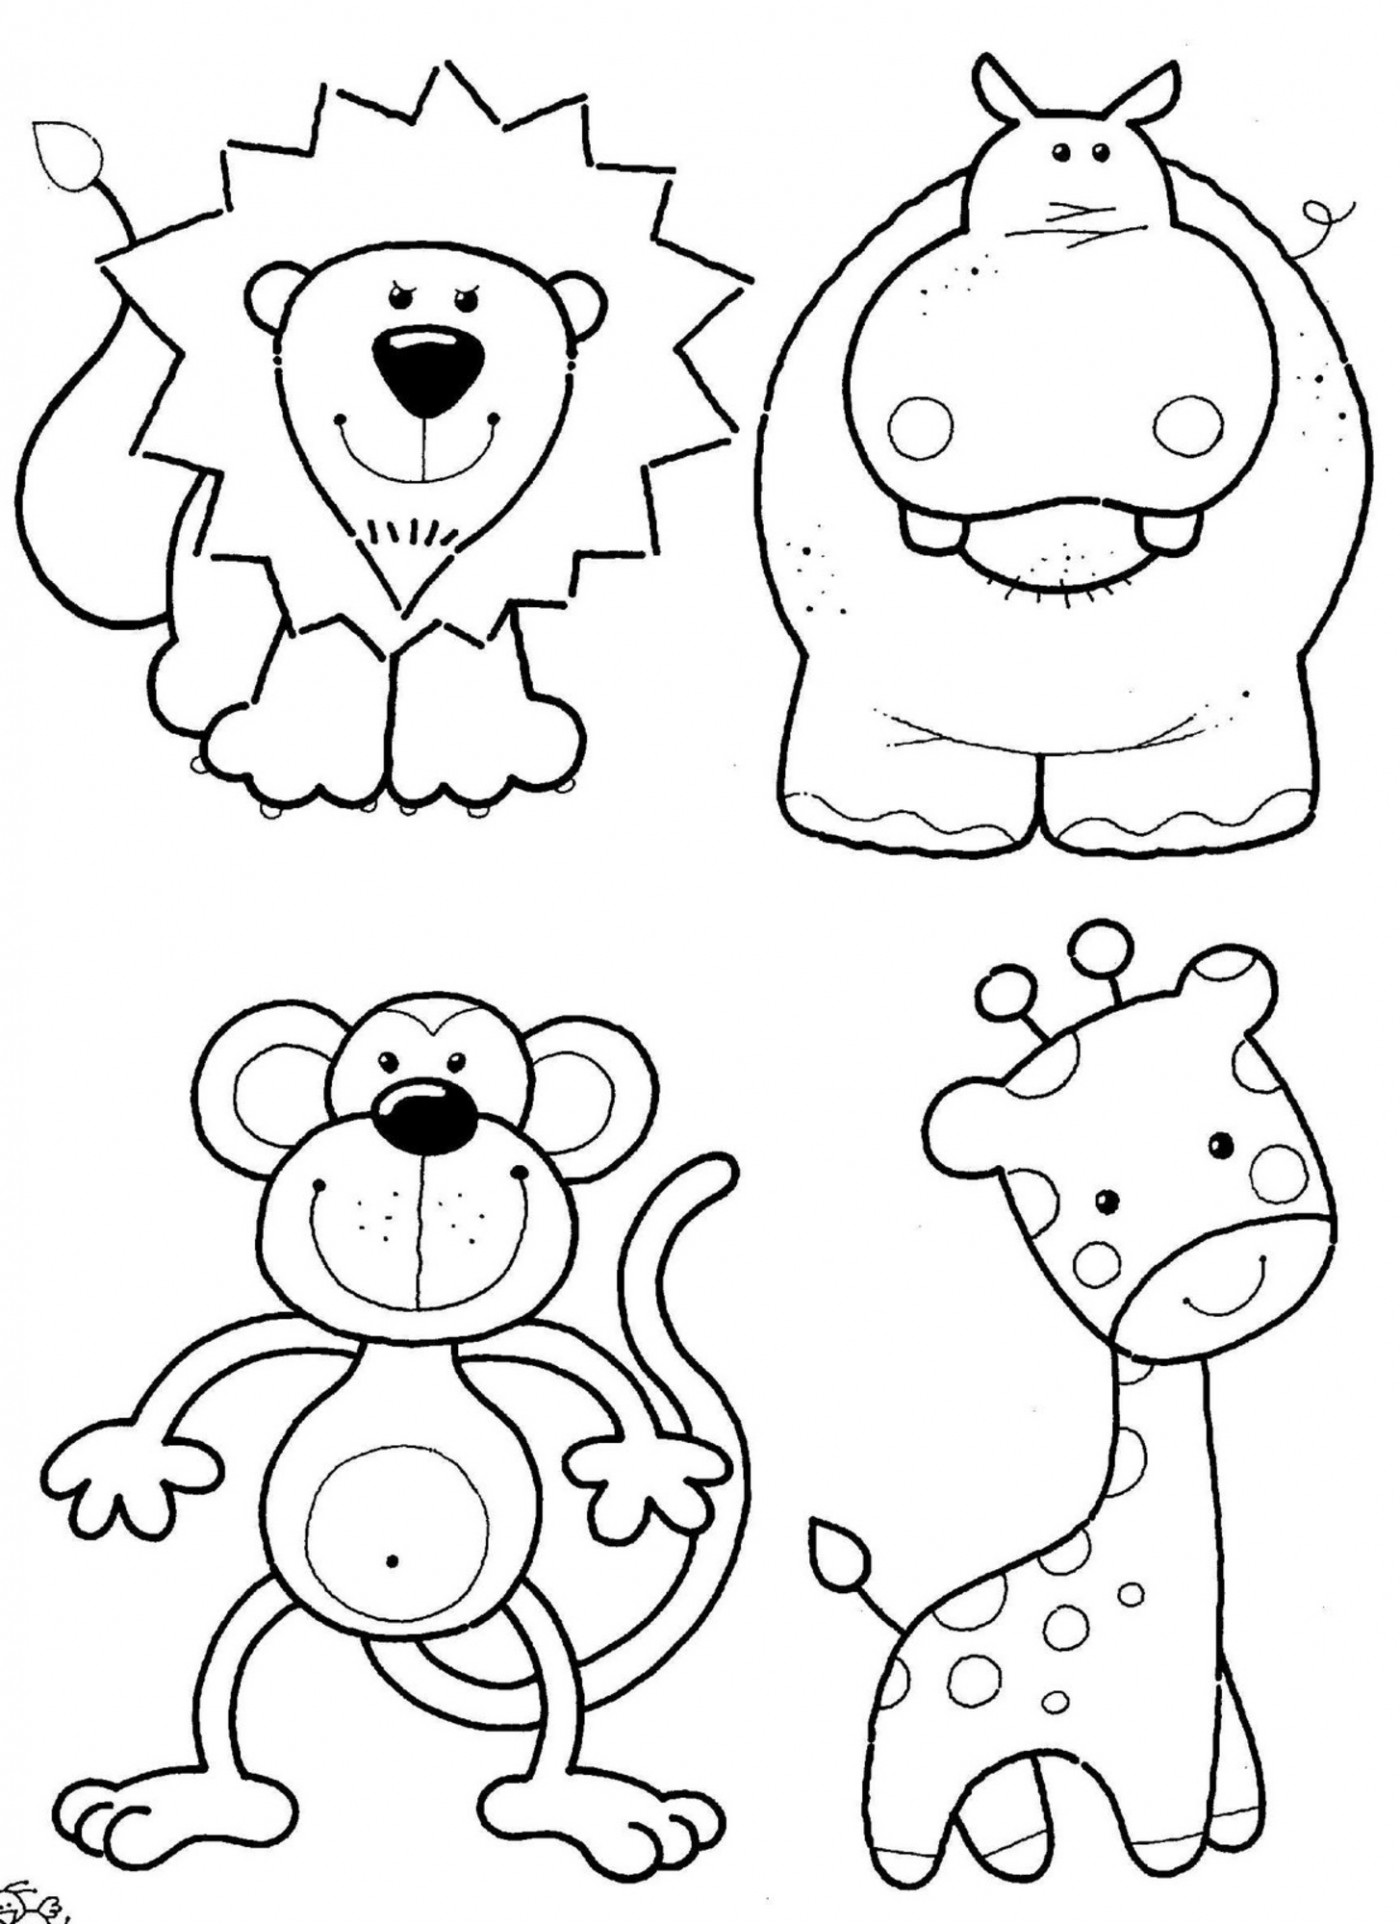 animal coloring pages free horse coloring pages for adults best coloring pages for kids coloring animal free pages